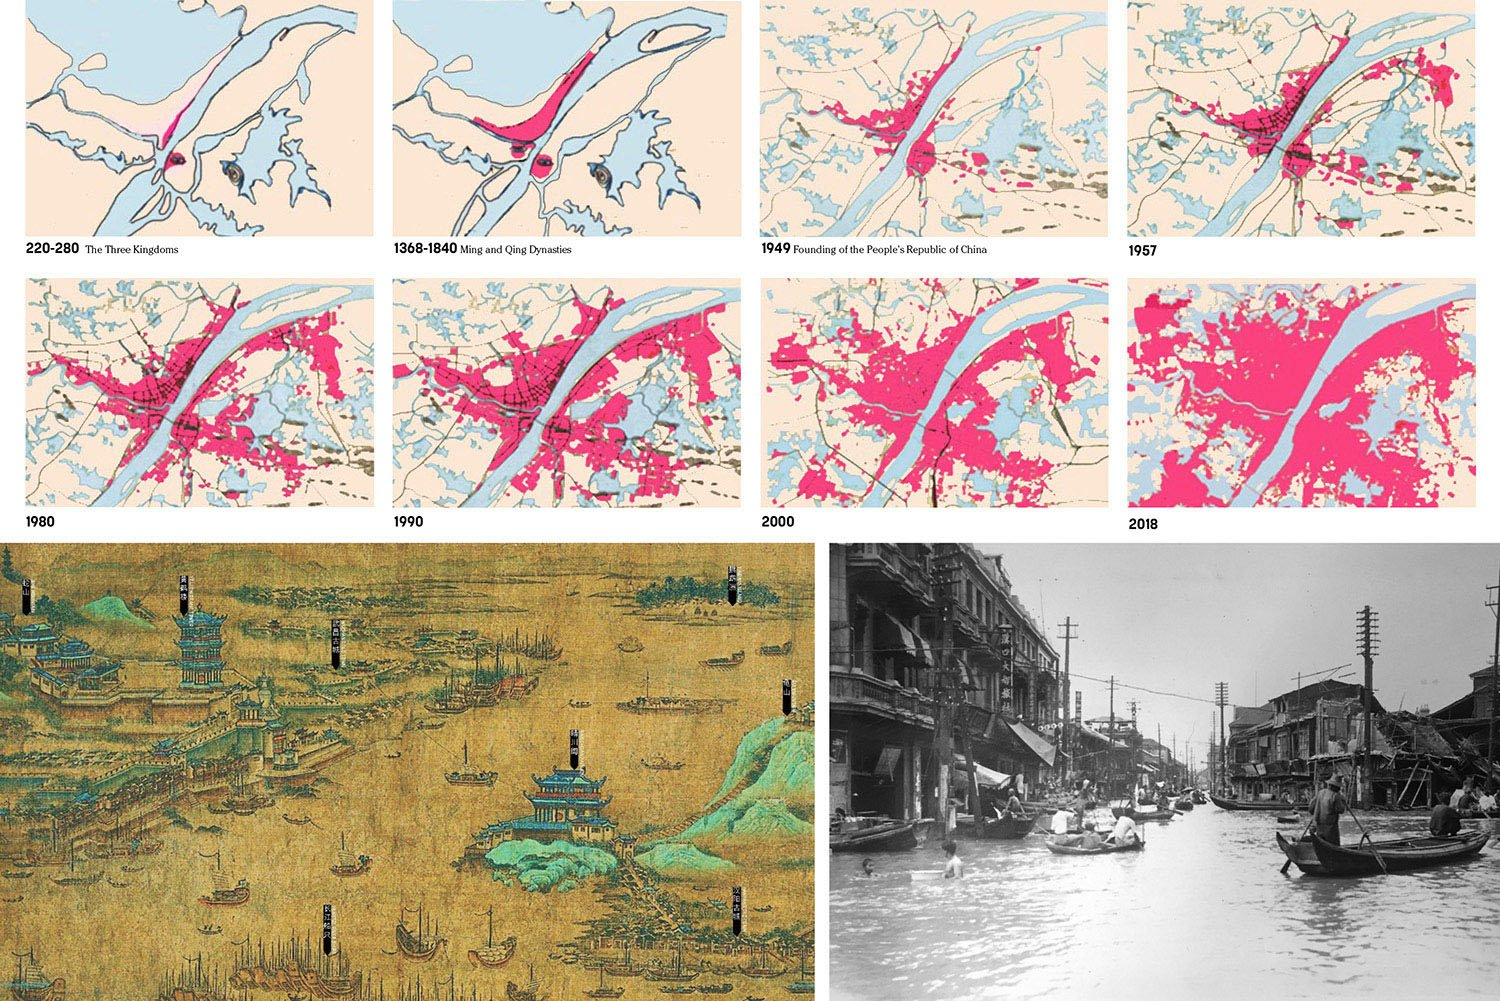 URBAN GROWTH CREATES A DISCONNECT: Wuhan and the Yangtze historically shared an intimate, symbiotic relationship until rapid urbanization and new levees separated the river from the city in recent decades. SASAKI